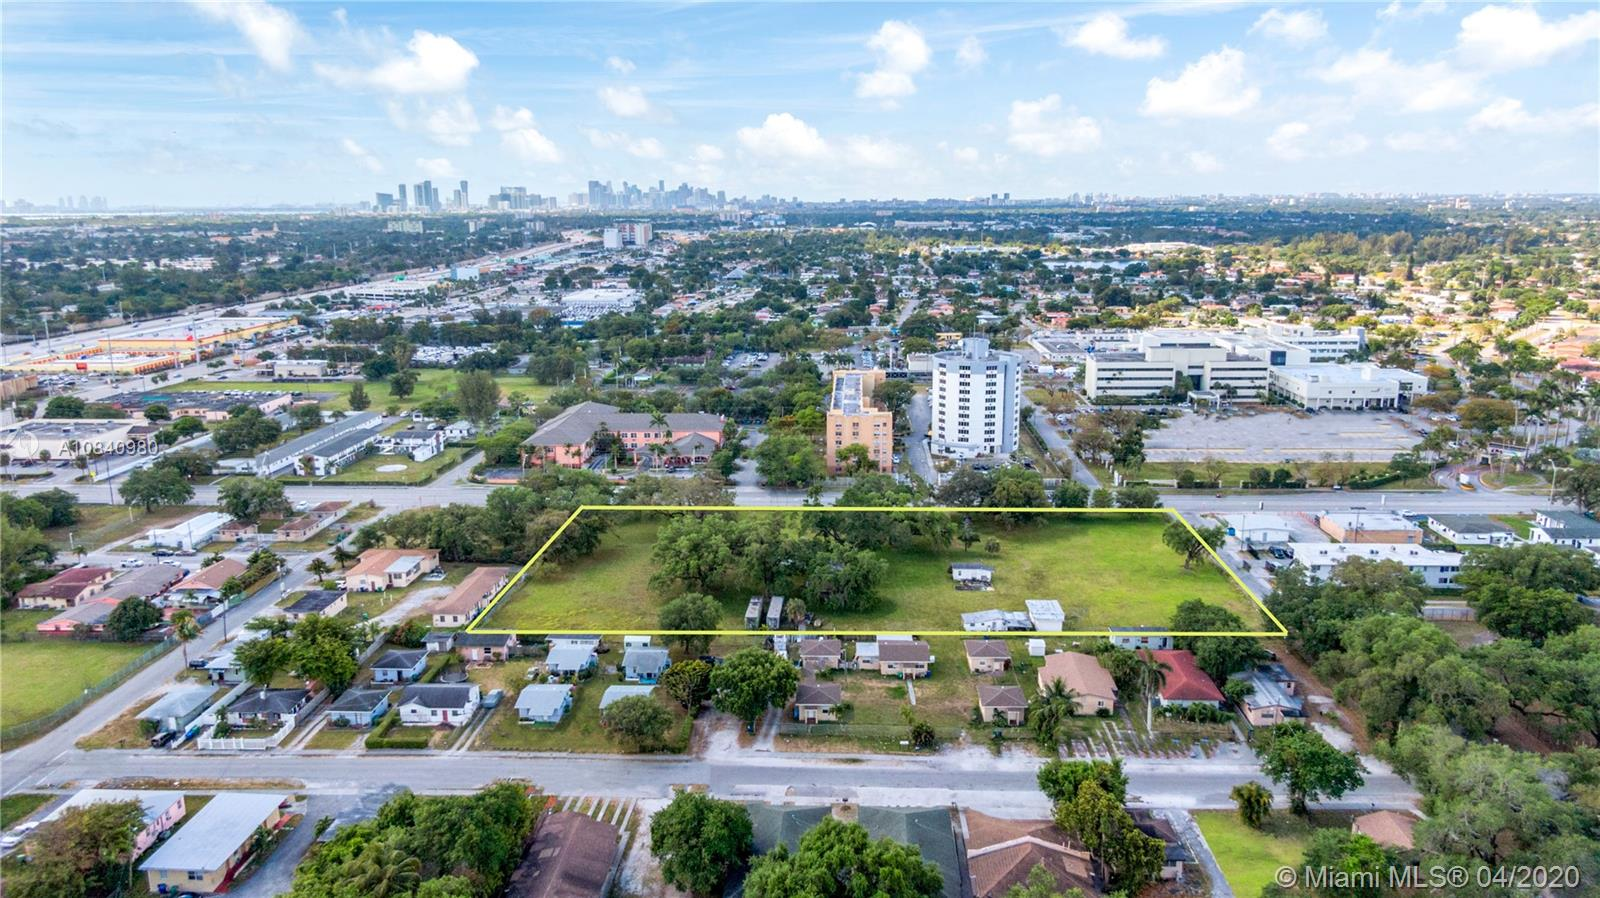 975 NW 95th St, Miami, FL 33150 - Miami, FL real estate listing